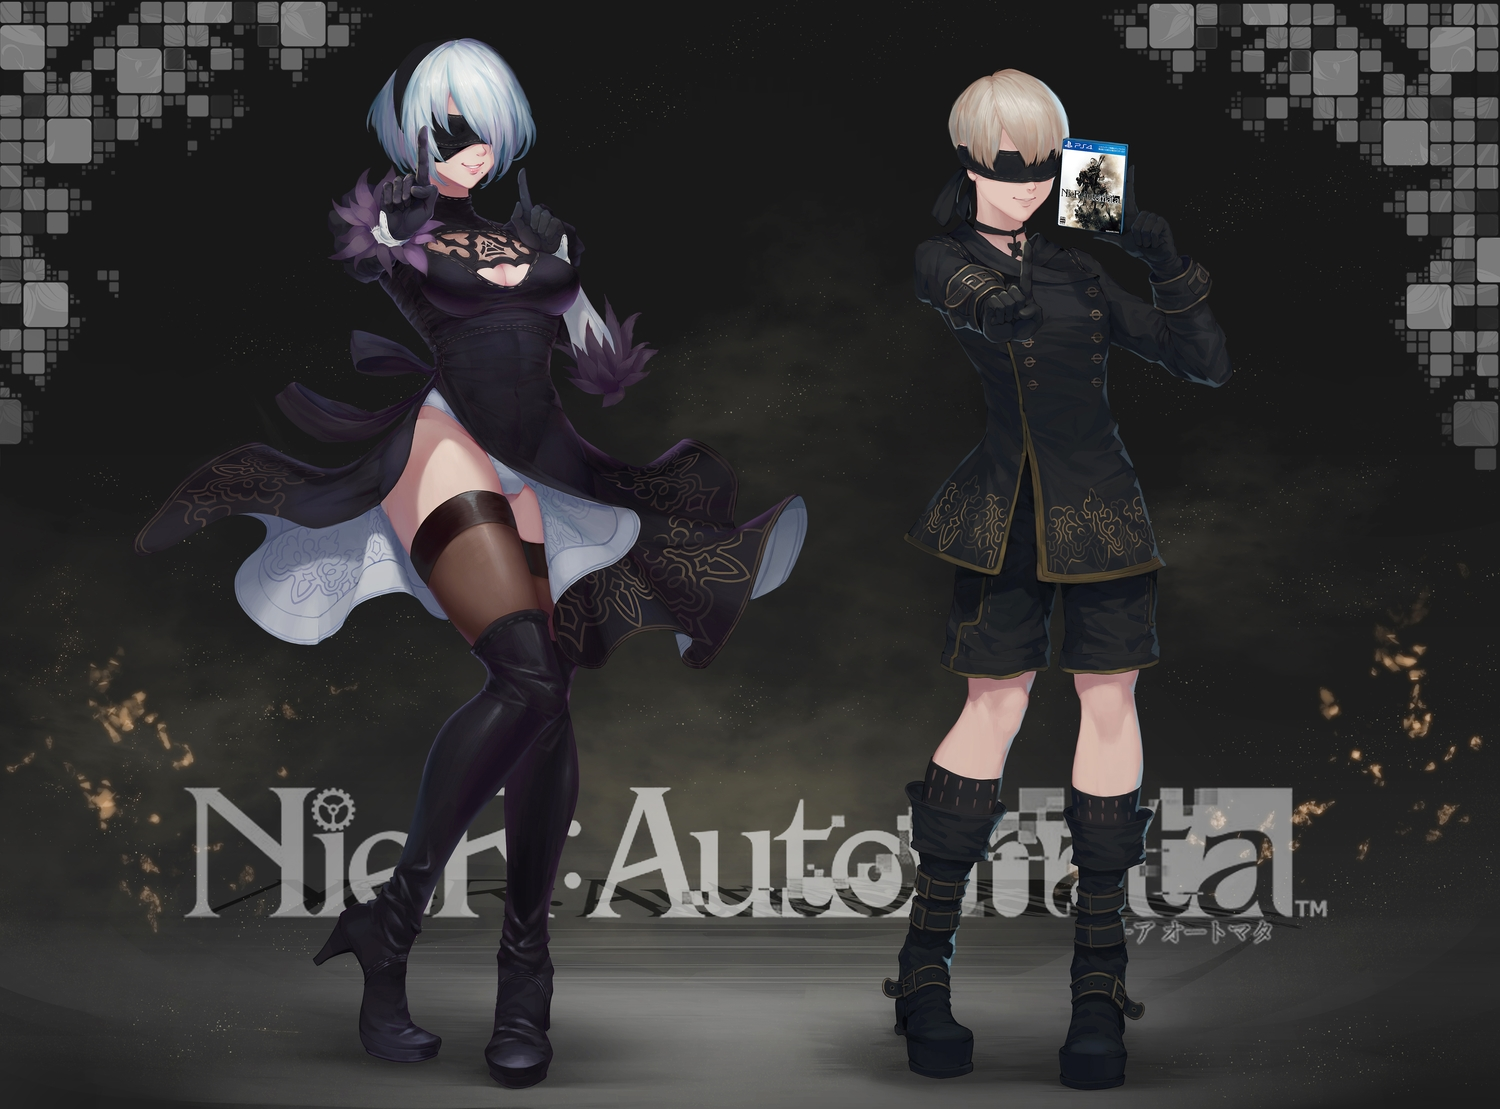 blindfold blonde_hair boots breasts choker cleavage dress gloves headband logo male nier nier:_automata ptdoge short_hair shorts thighhighs upskirt white_hair yorha_unit_no._2_type_b yorha_unit_no._9_type_s